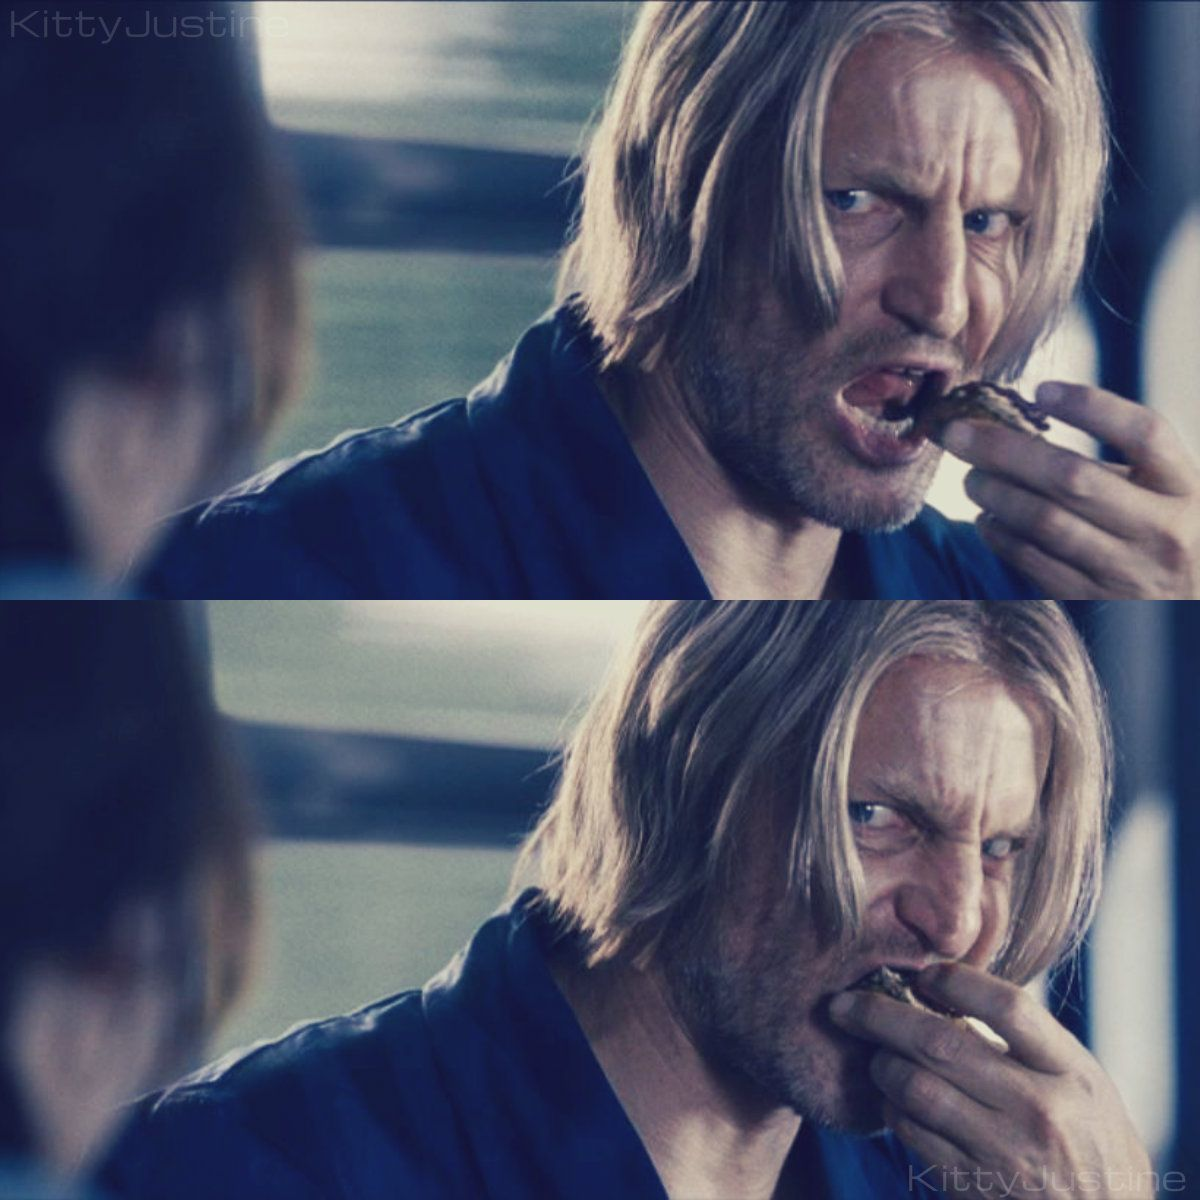 Haymitch This Is Why He Is One Of My Favorite Characters I Could Seriously See Him Doing This